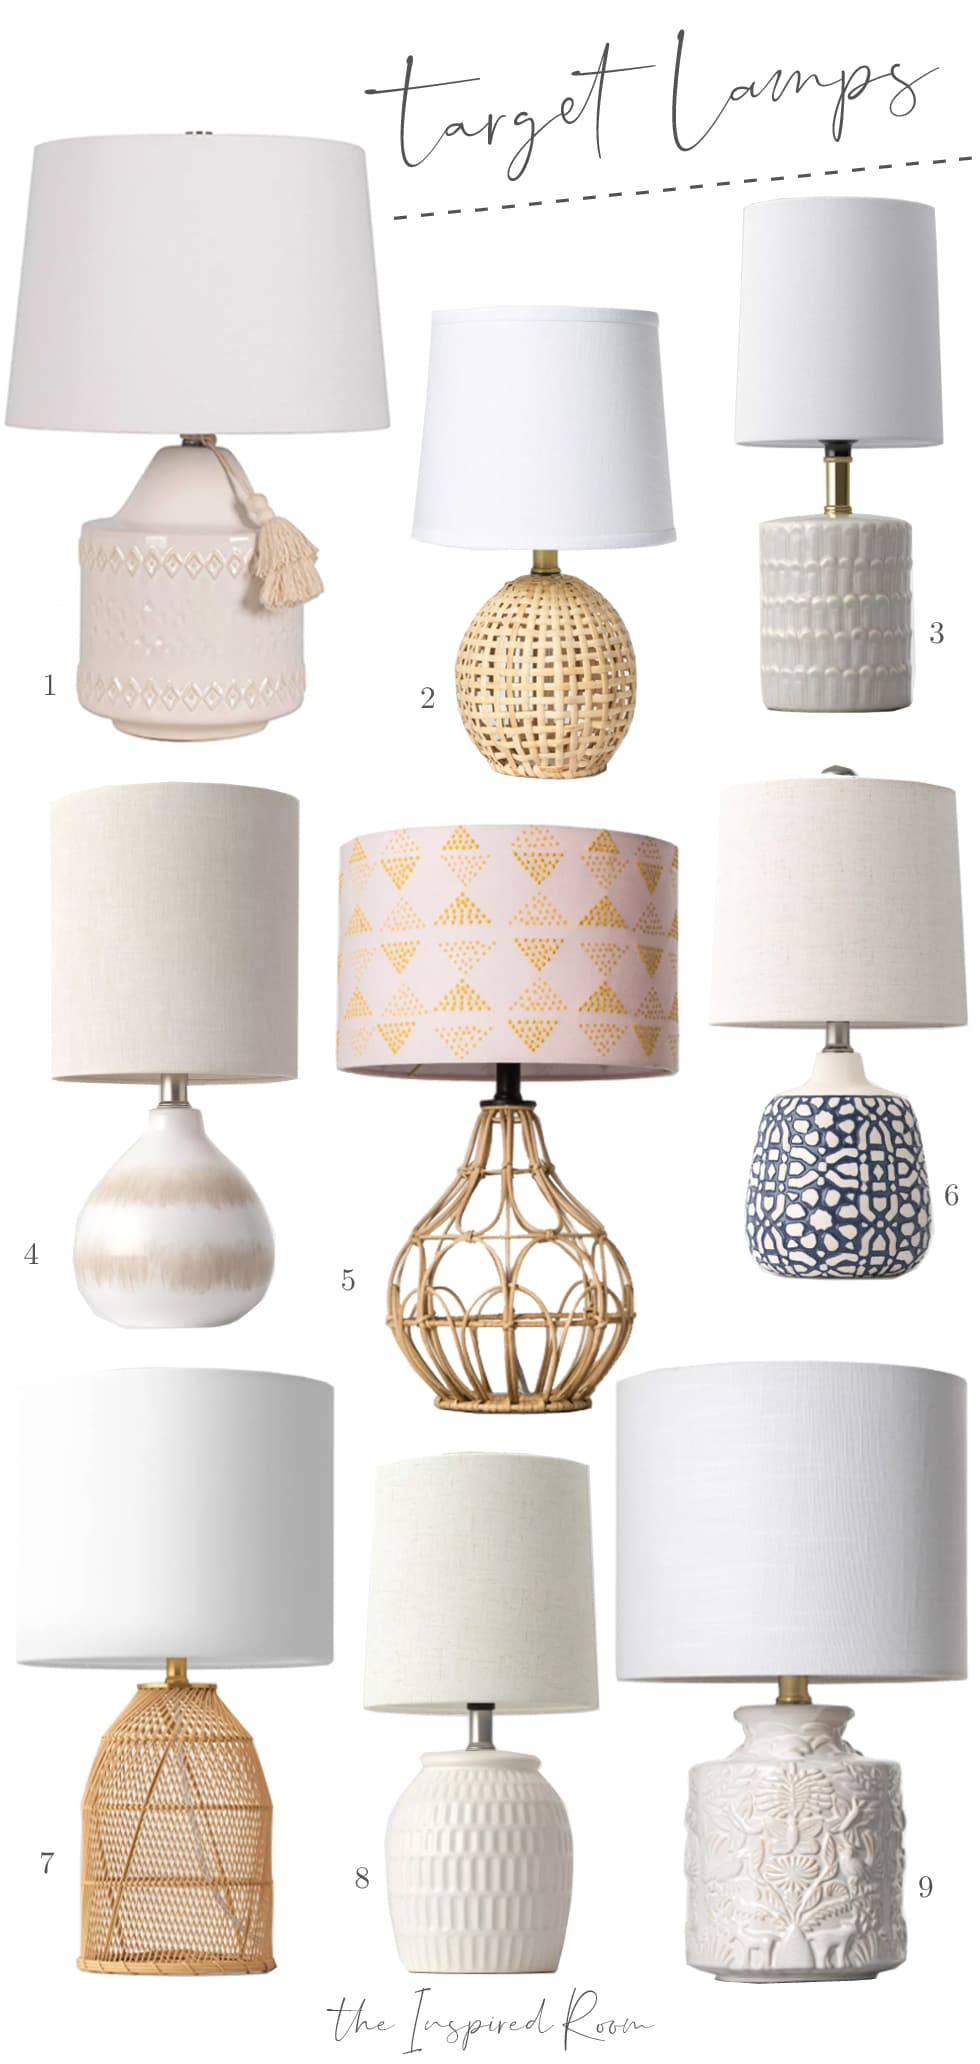 9 Affordable Lamps from Target